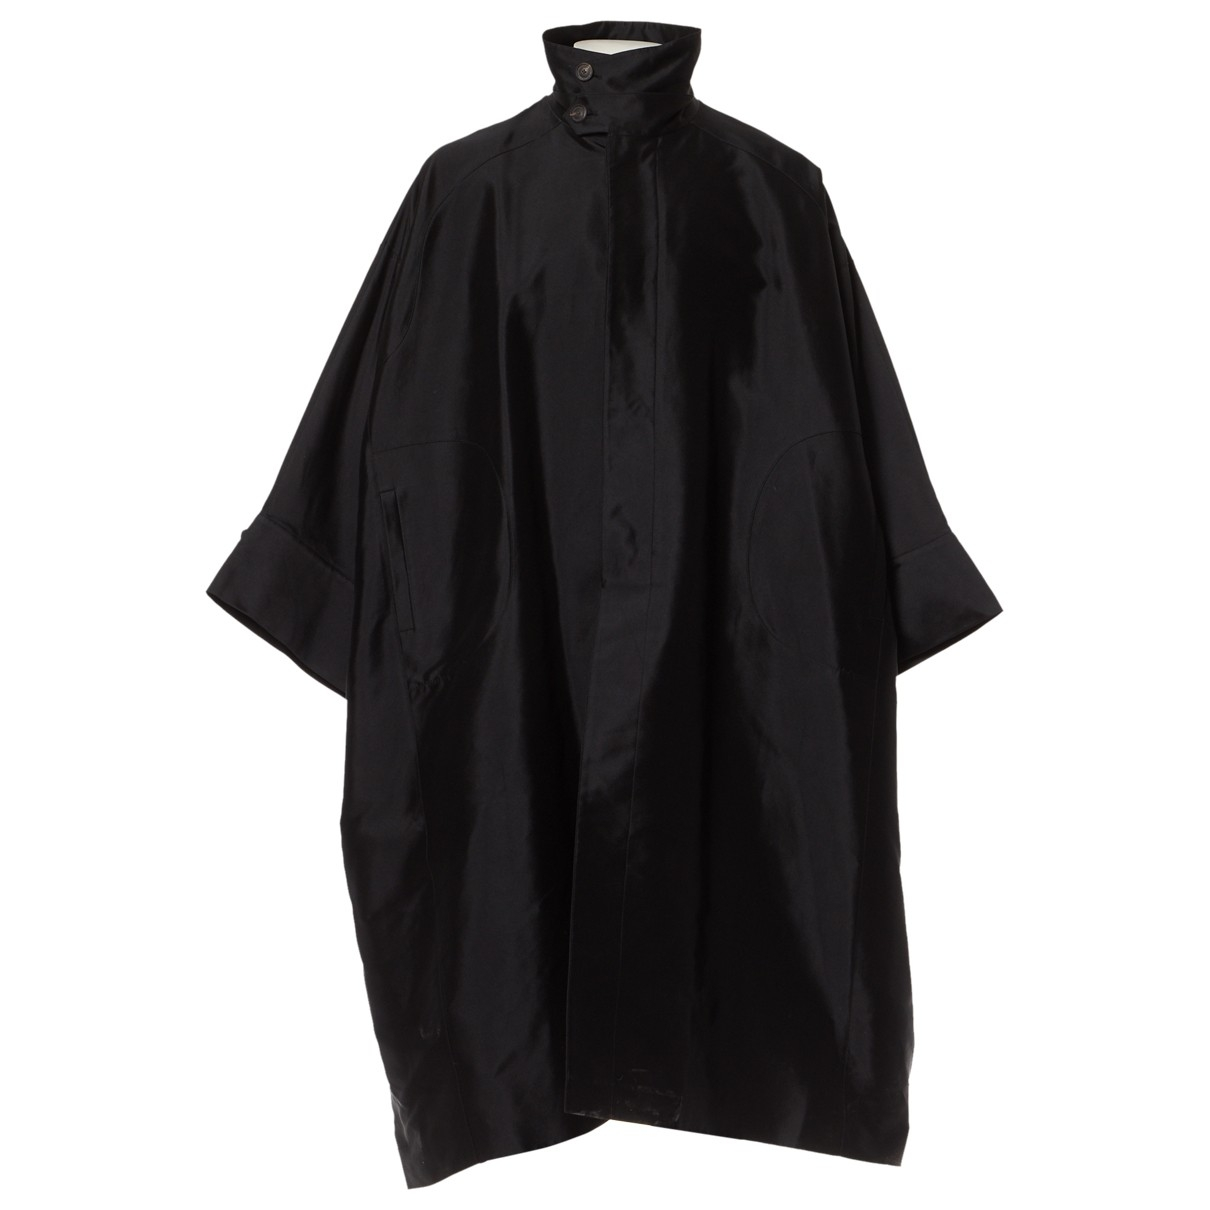 Ports 1961 \N Black coat  for Men M International